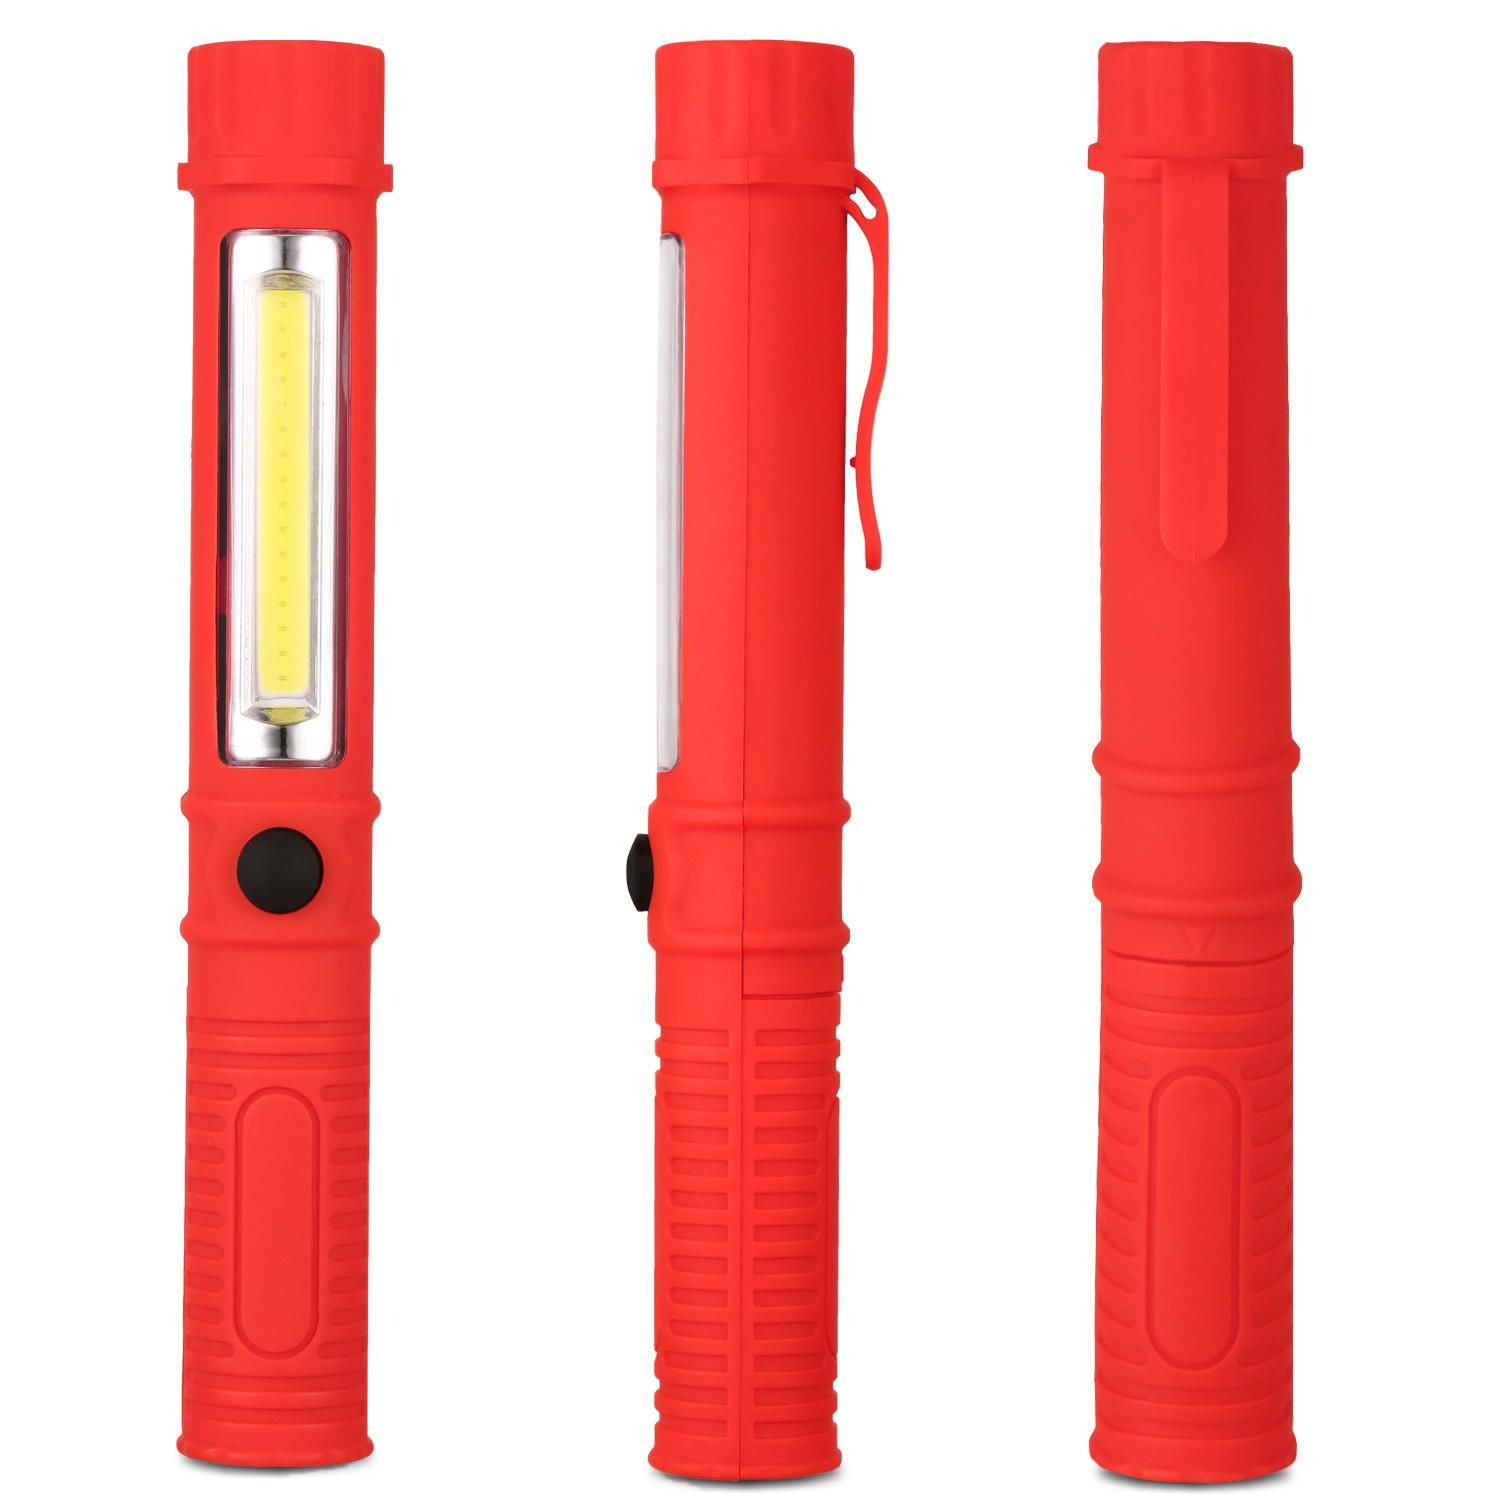 Portable COB LED Flashlights – Powerful 400 Lumen with Magnetic Base Flood Light 165 FT Range,7 Working Hours